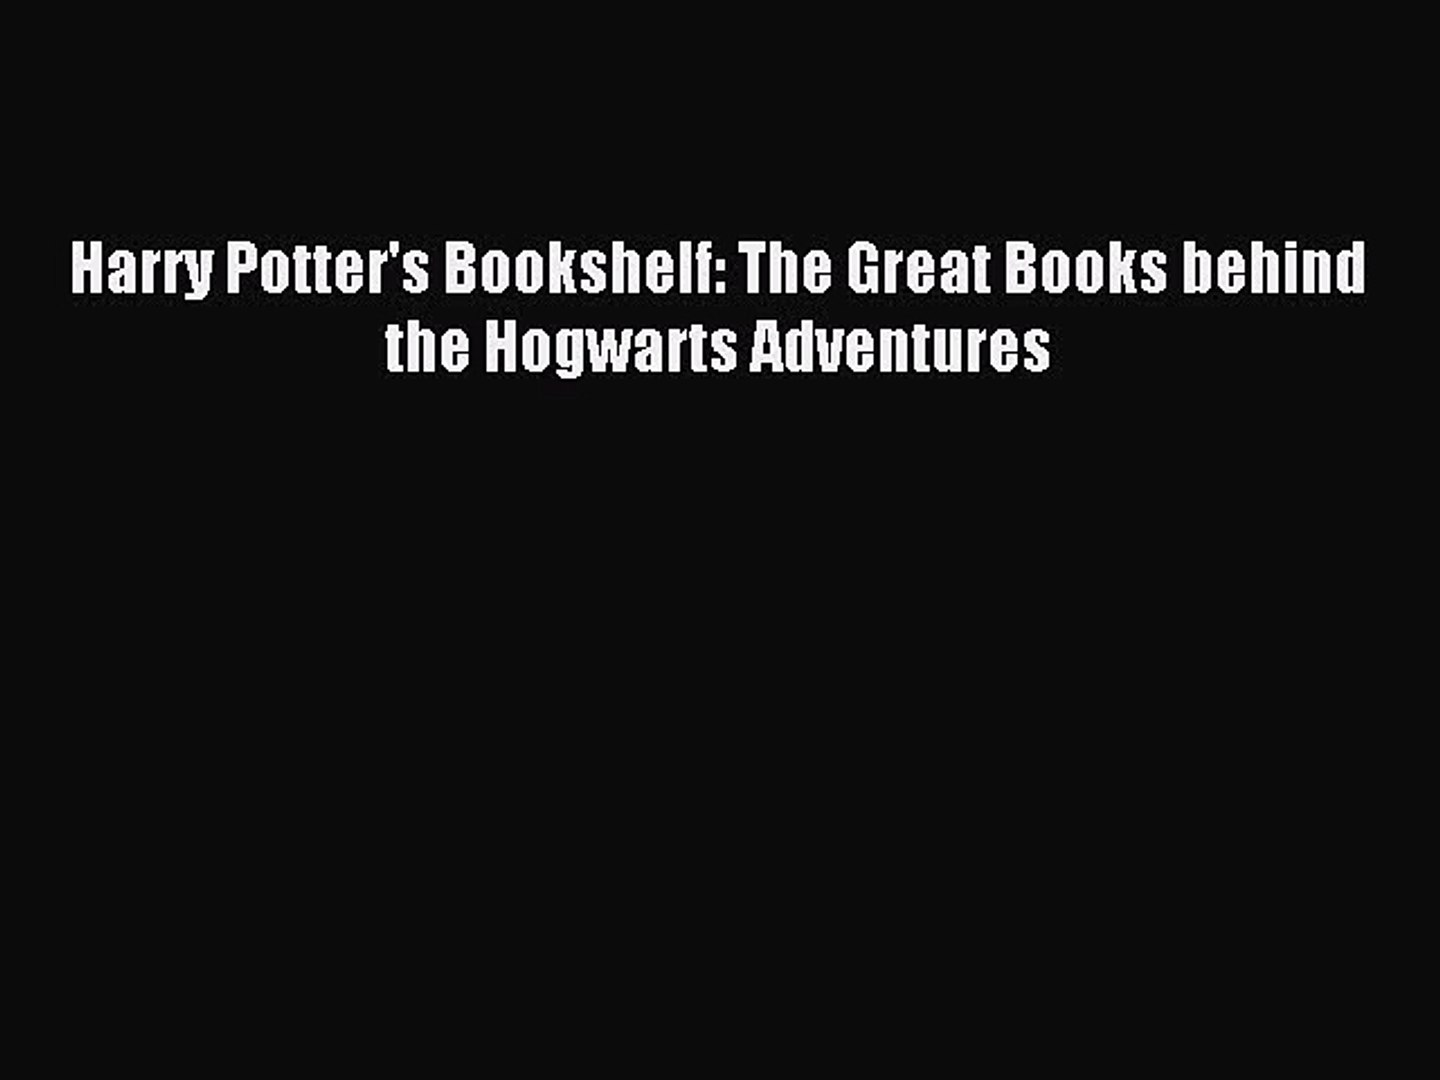 Harry Potters Bookshelf: The Great Books behind the Hogwarts Adventures